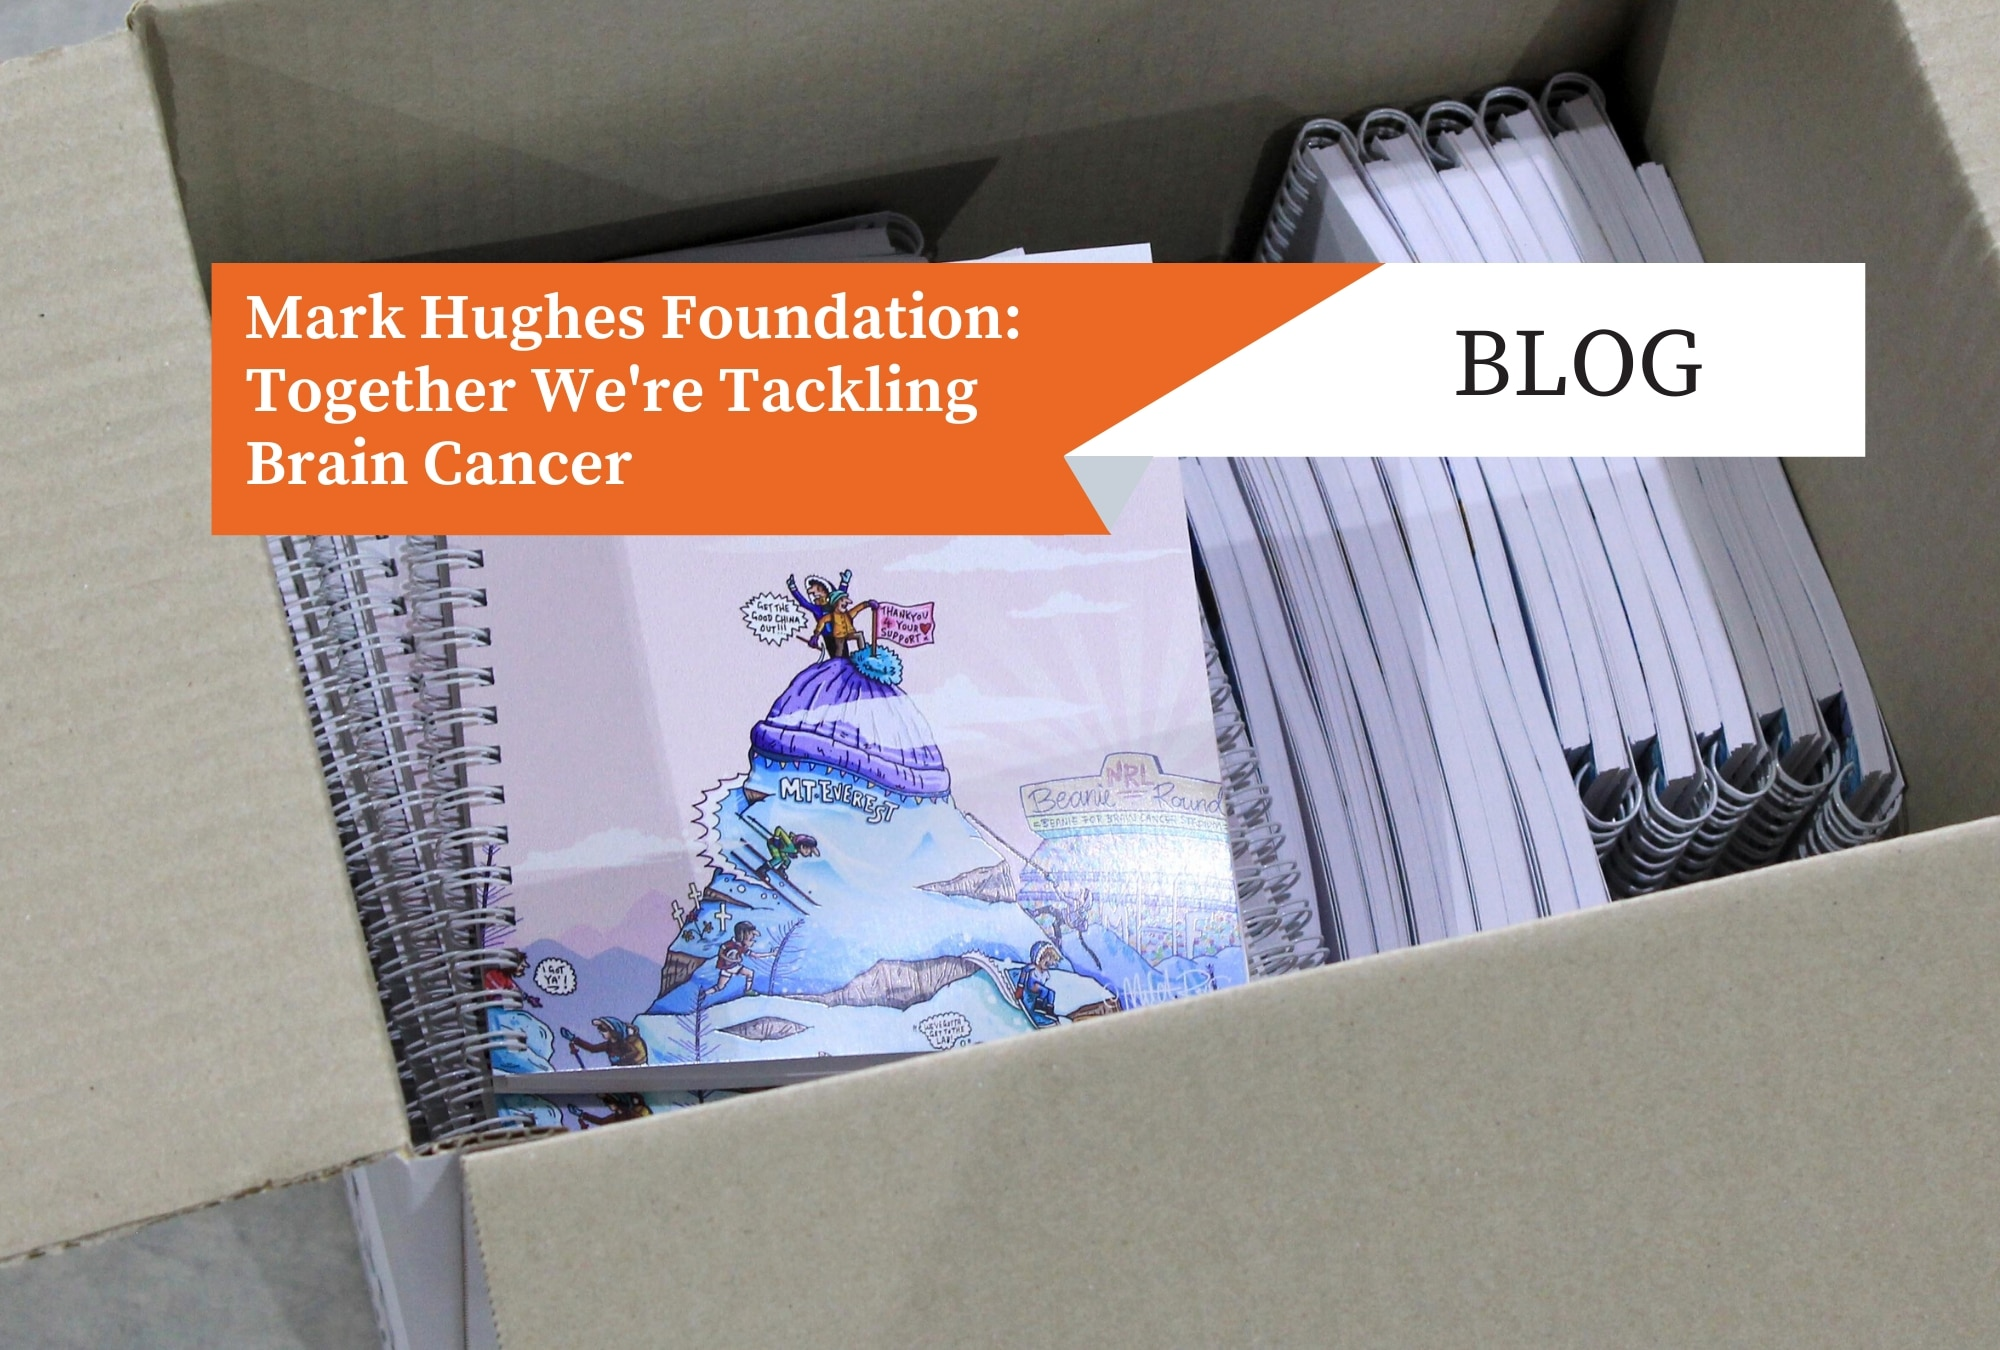 Mark Hughes Foundation: Together We're Tackling Brain Cancer